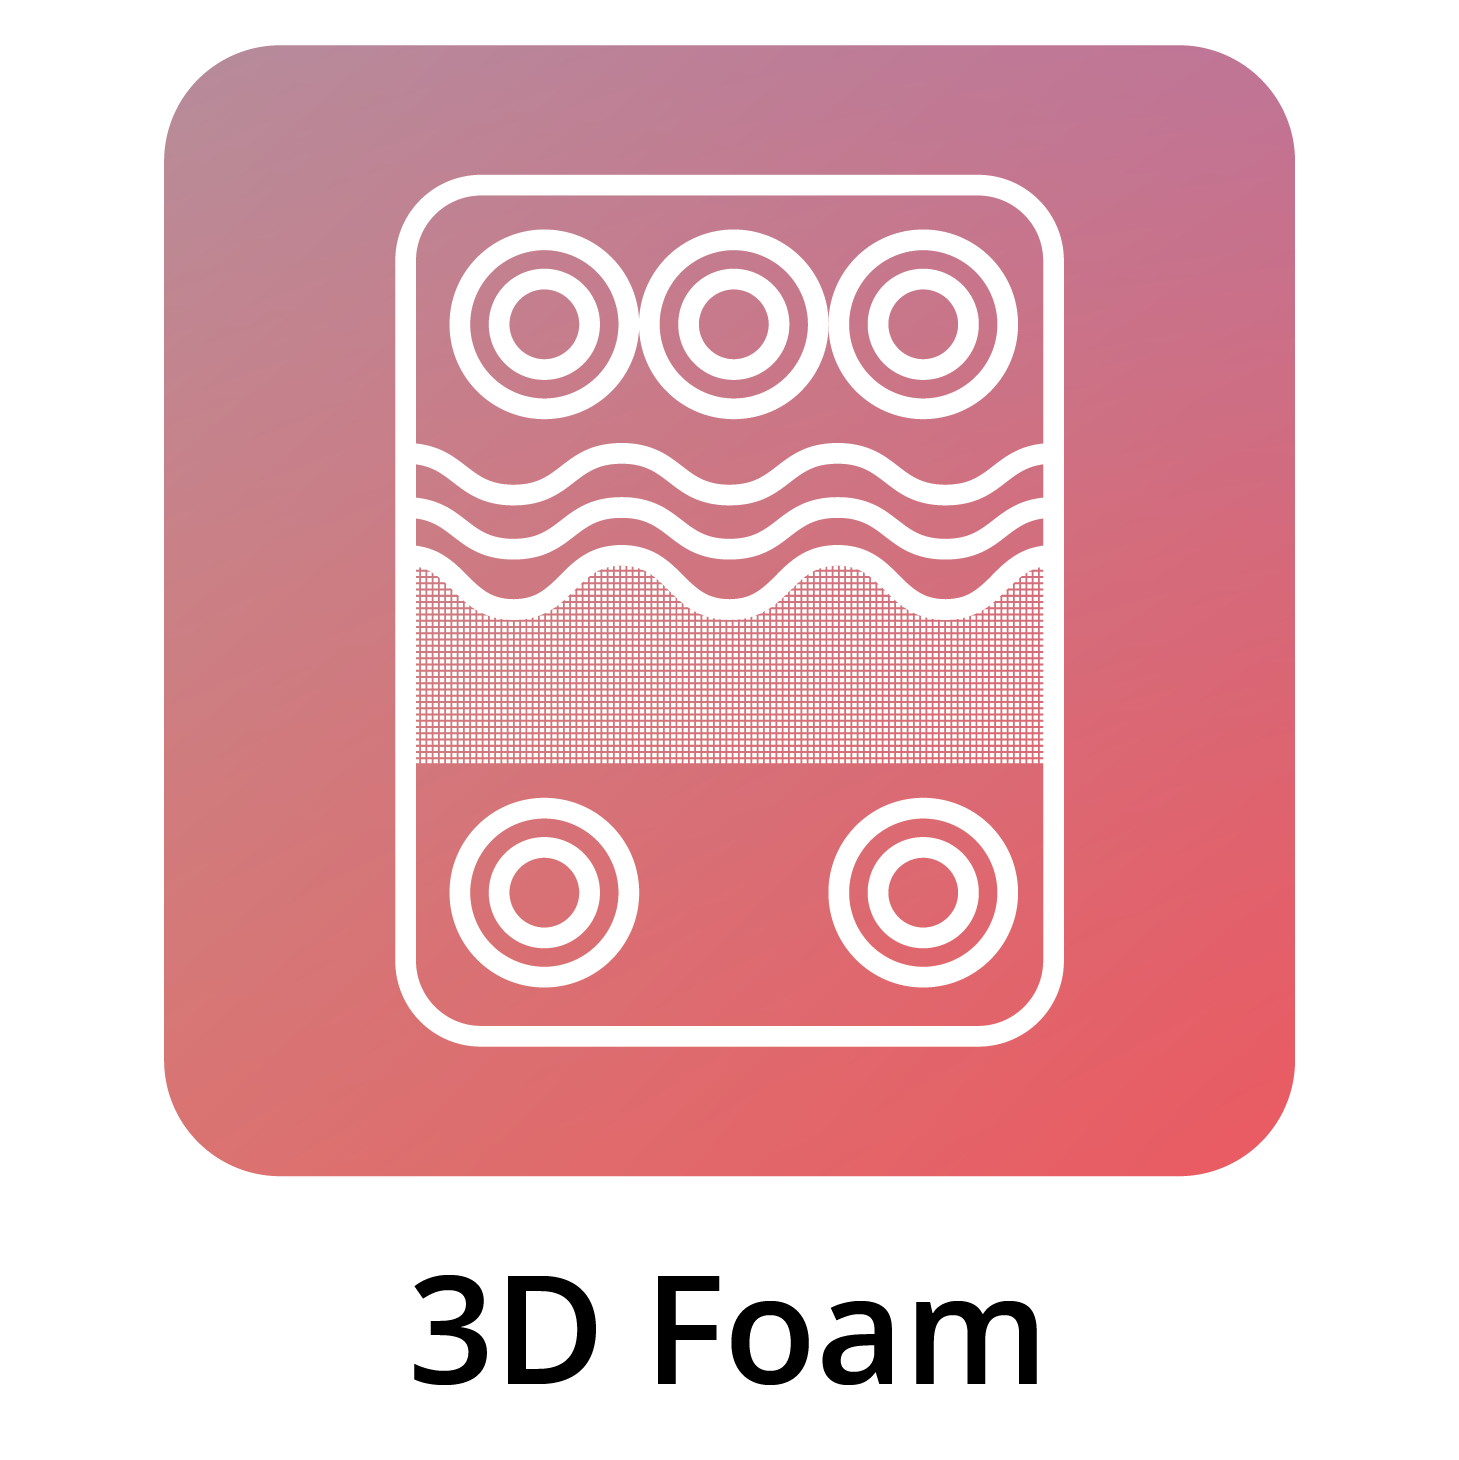 Cutted Foam In Bed Icon